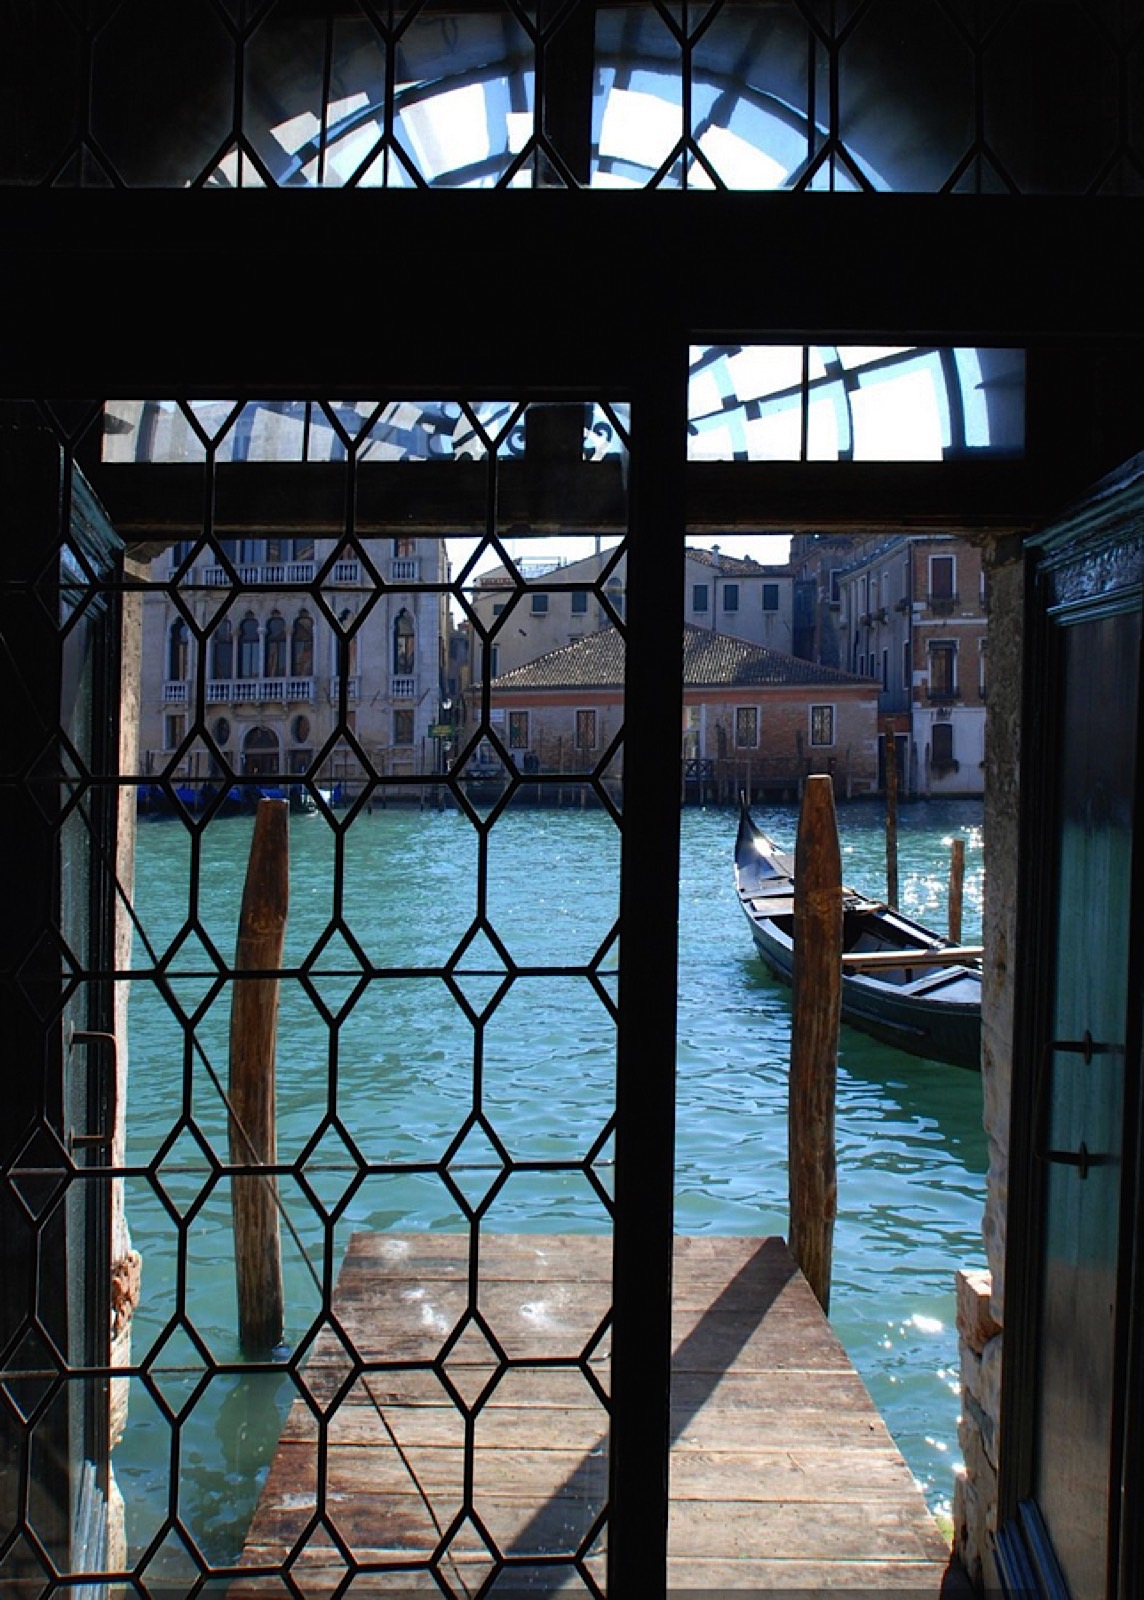 LUXURY ACCOMMODATION IN A 16TH CENTURY PALAZZO VENICE